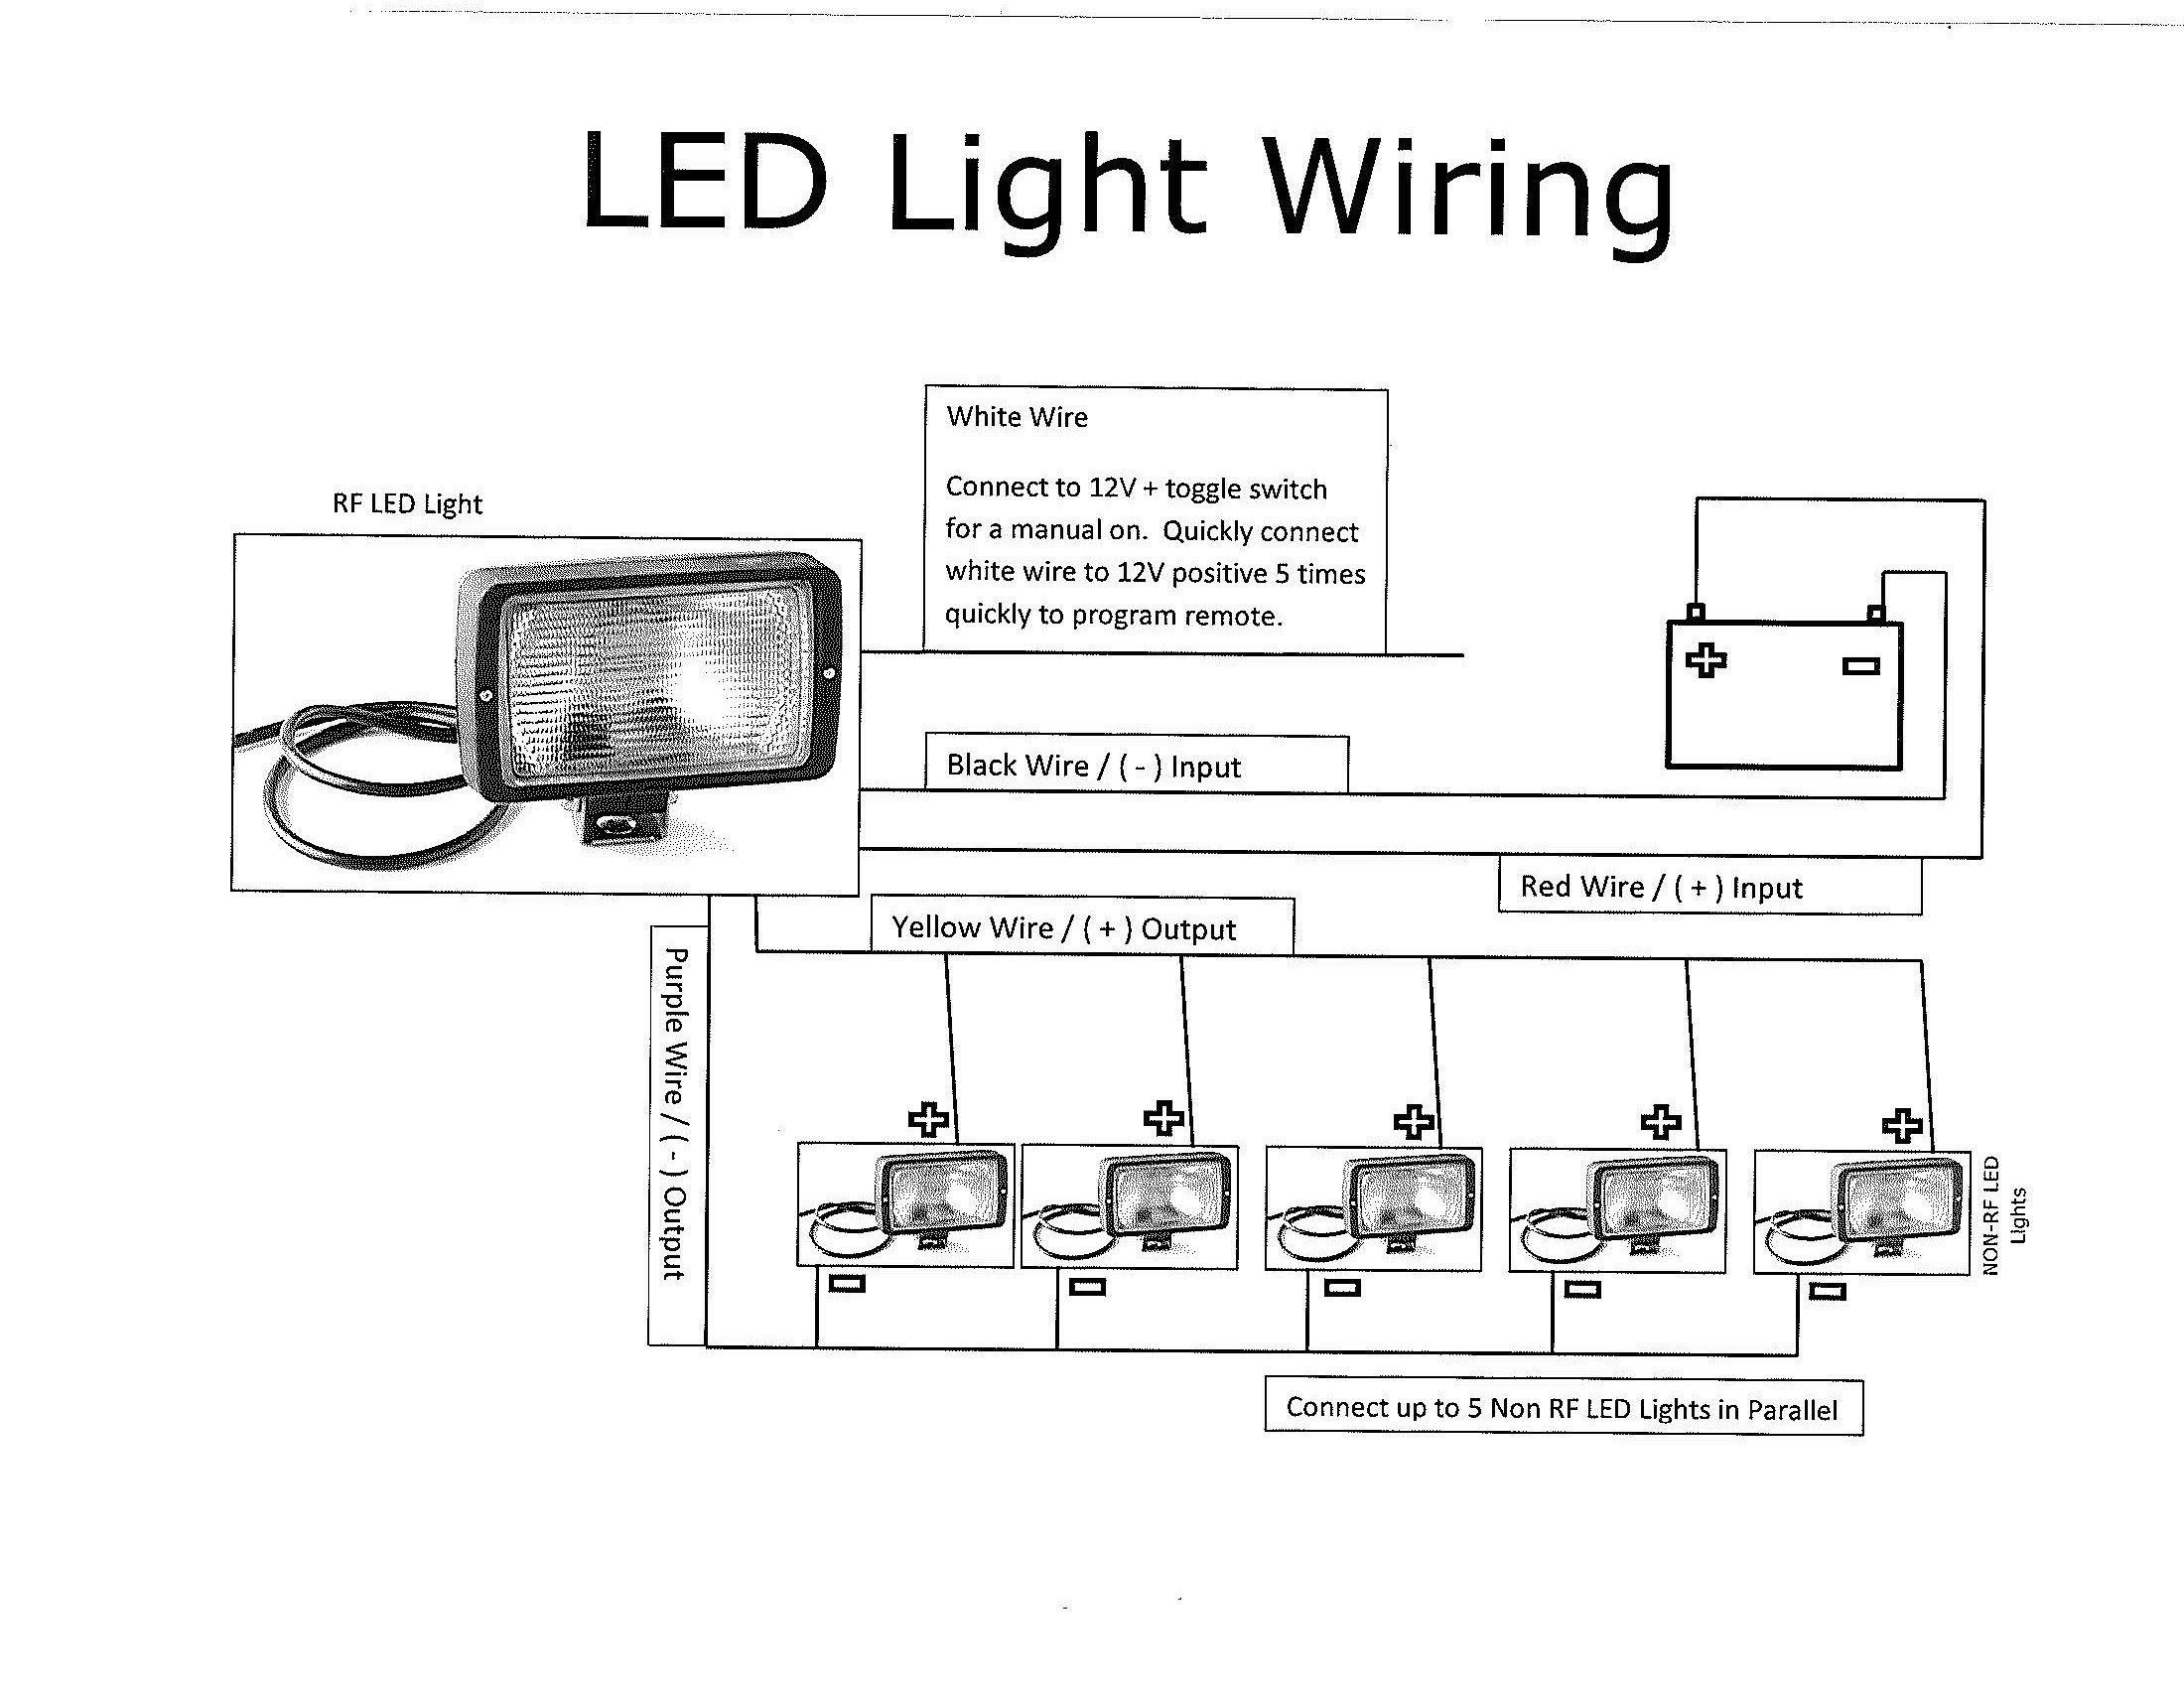 Unique Light And Switch Diagram Diagram Wiringdiagram Diagramming Diagramm Visuals Visualisation Graphical Diagram Lights 3 Way Switch Wiring